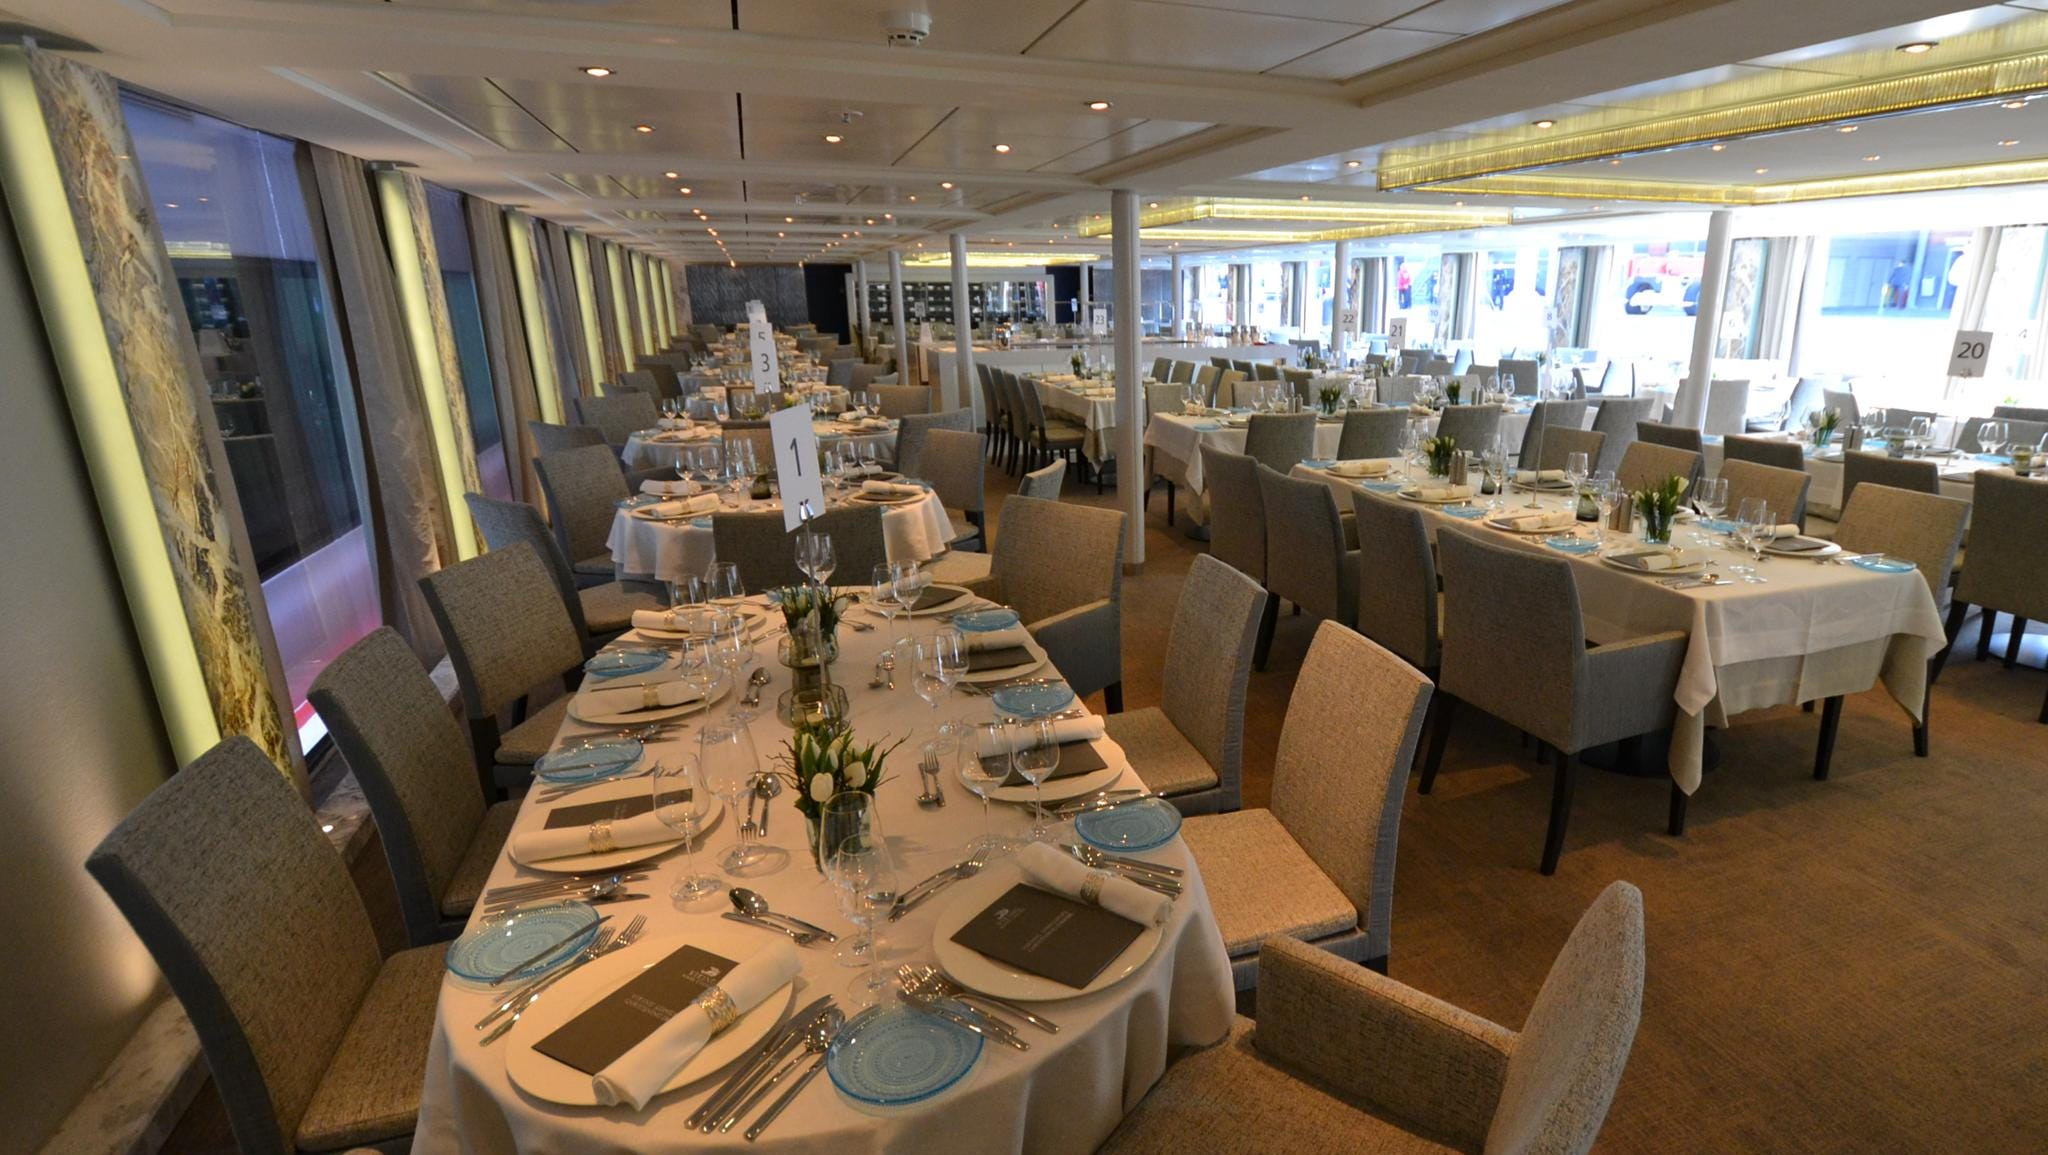 The Viking Odin's restaurant is big enough to serve all 190 passengers on board the vessel in a single seating each night. It's located at the front of the ship one deck below the Observation Lounge.